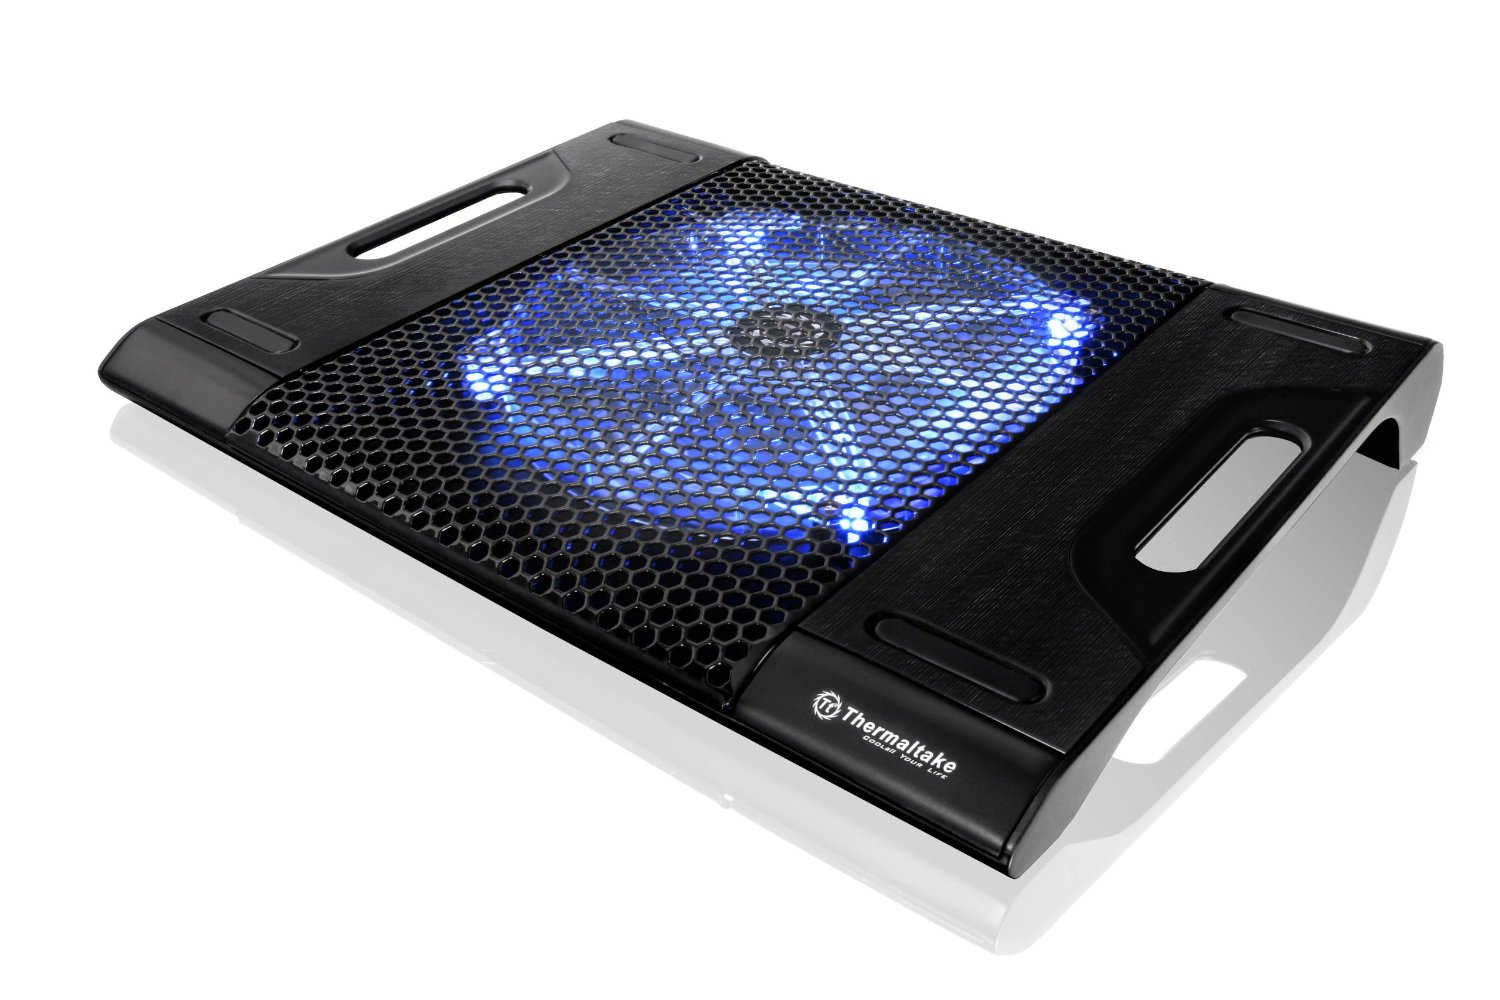 Thermaltake laptop cooler